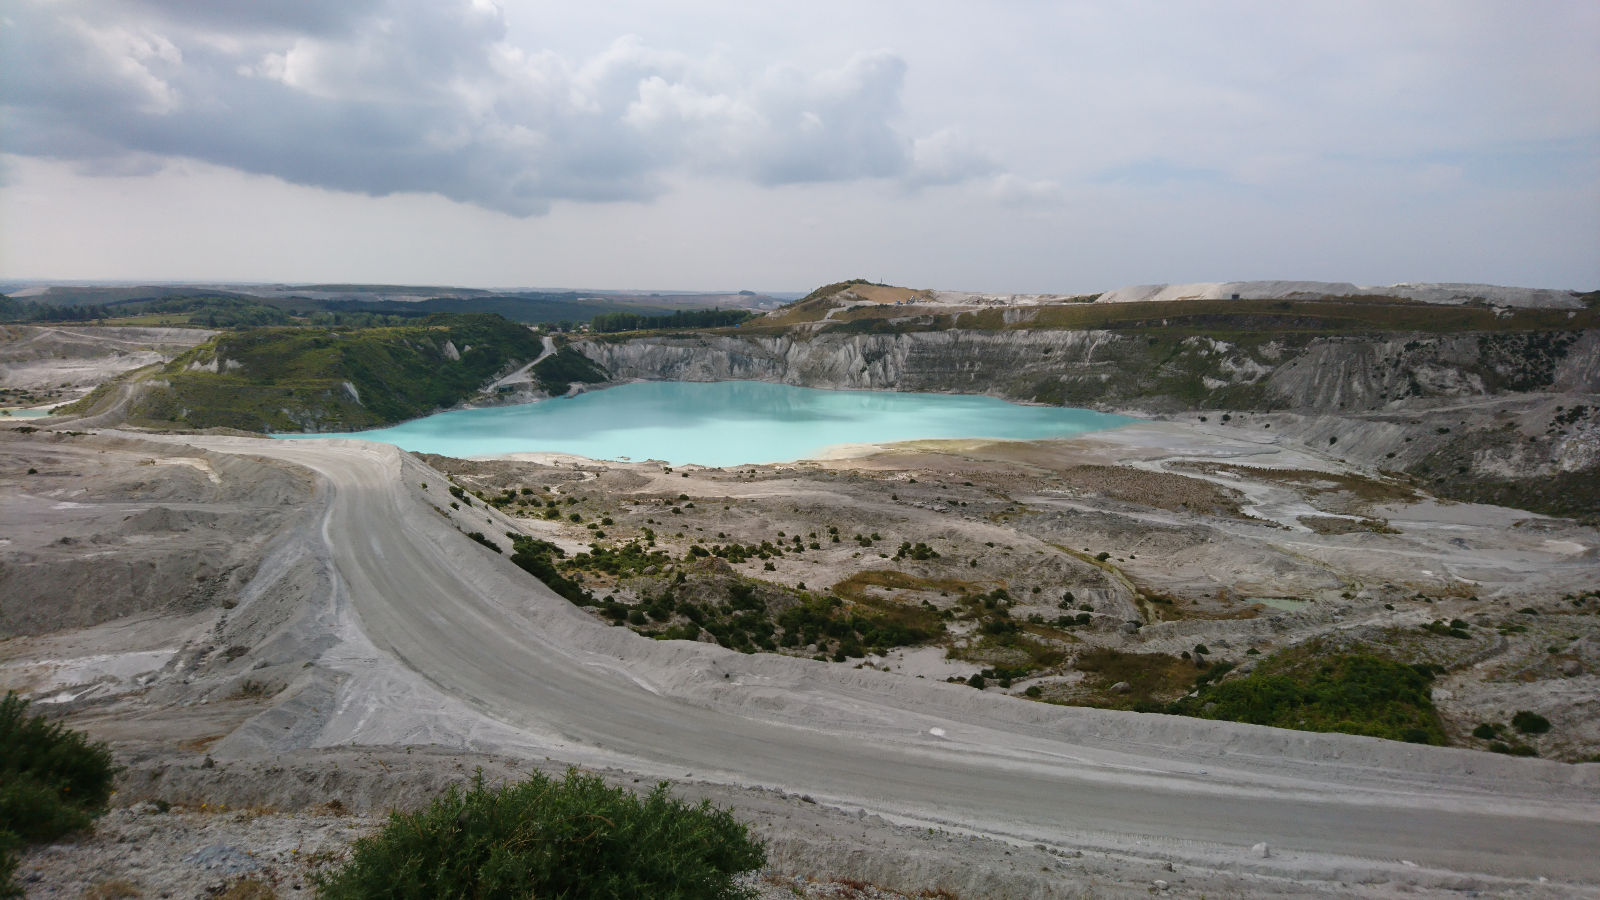 China clay lake at Lee Moor quarry